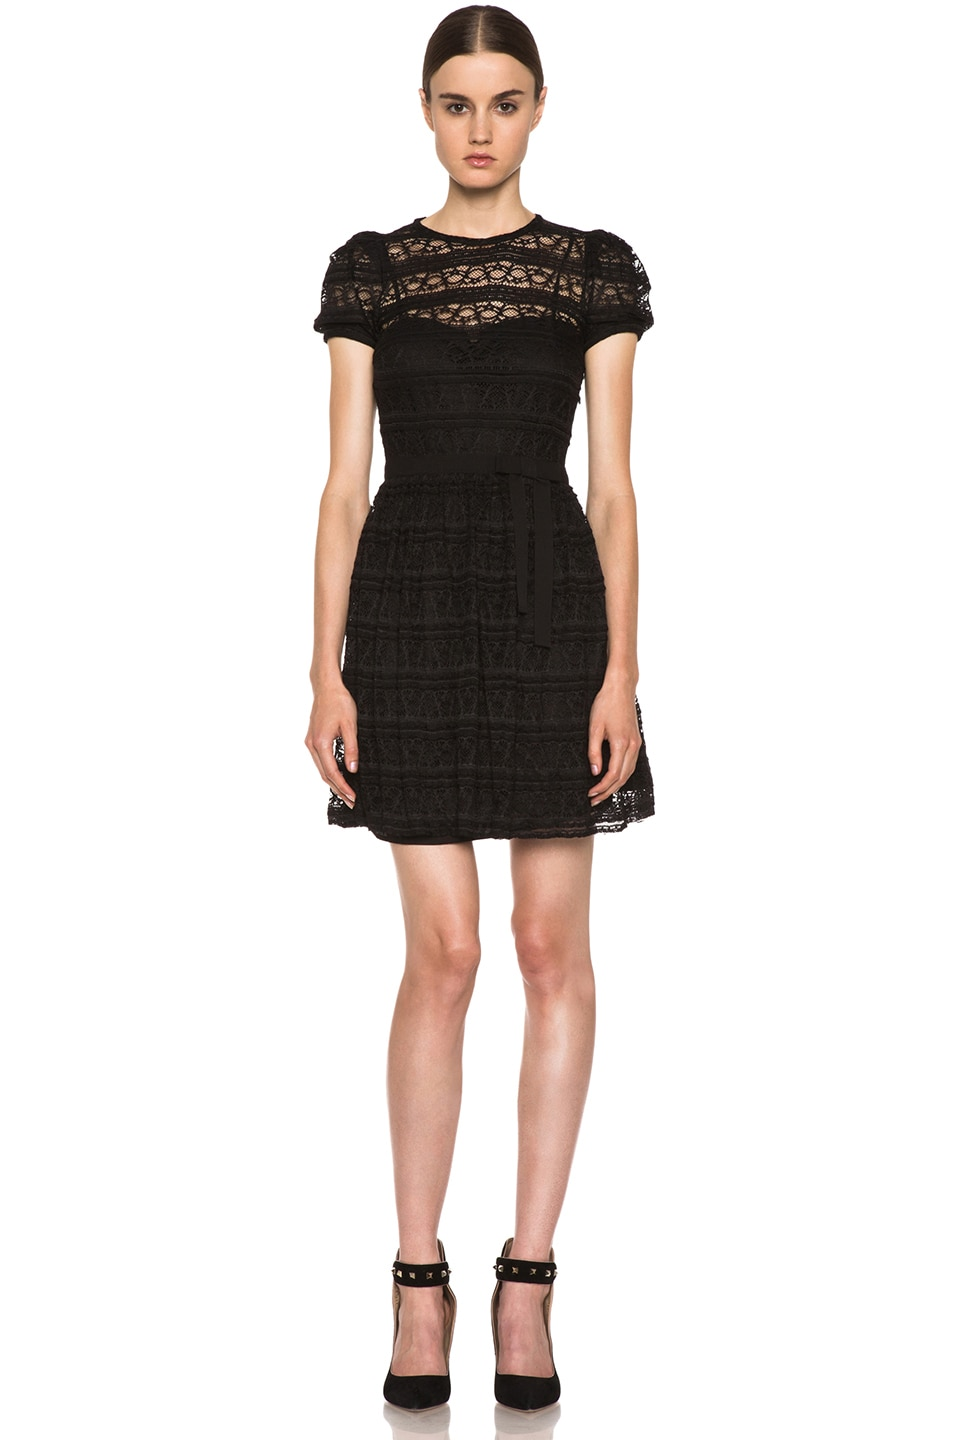 Enjoy For Sale Cheap Amazon Valentino lace knit dress Where To Buy Low Price Clearance Collections Drop Shipping TmLWMT